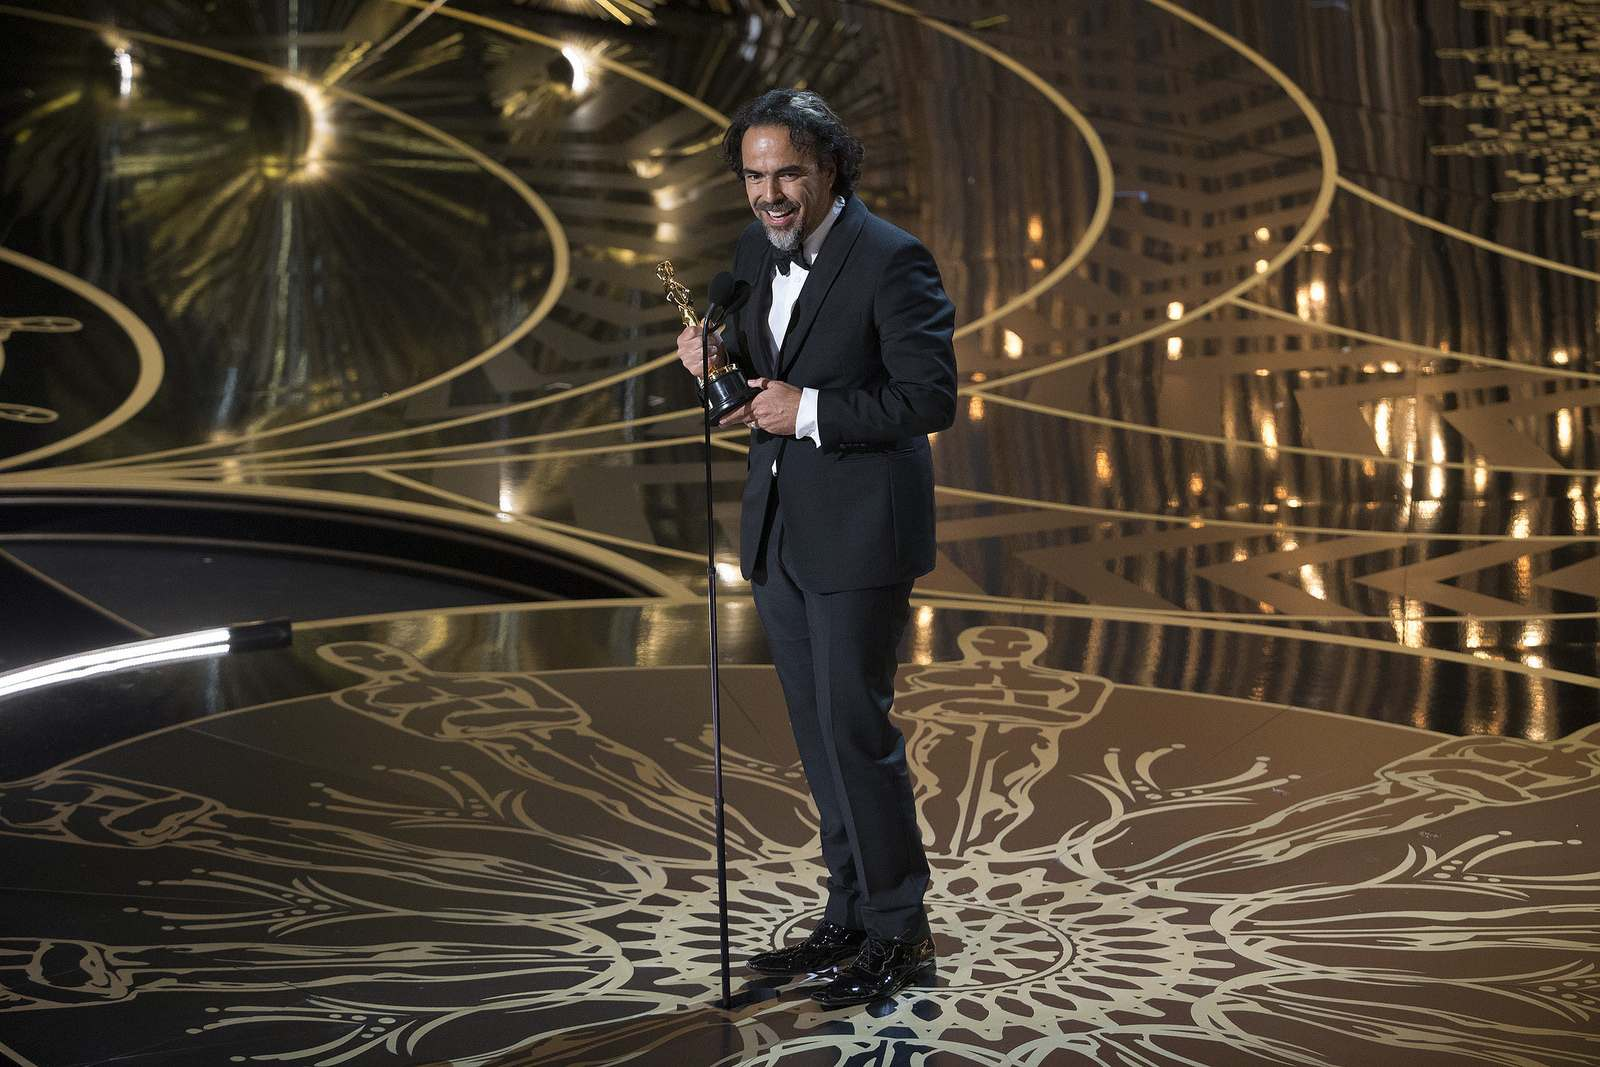 oscars 20164 The 88th Academy Awards Results